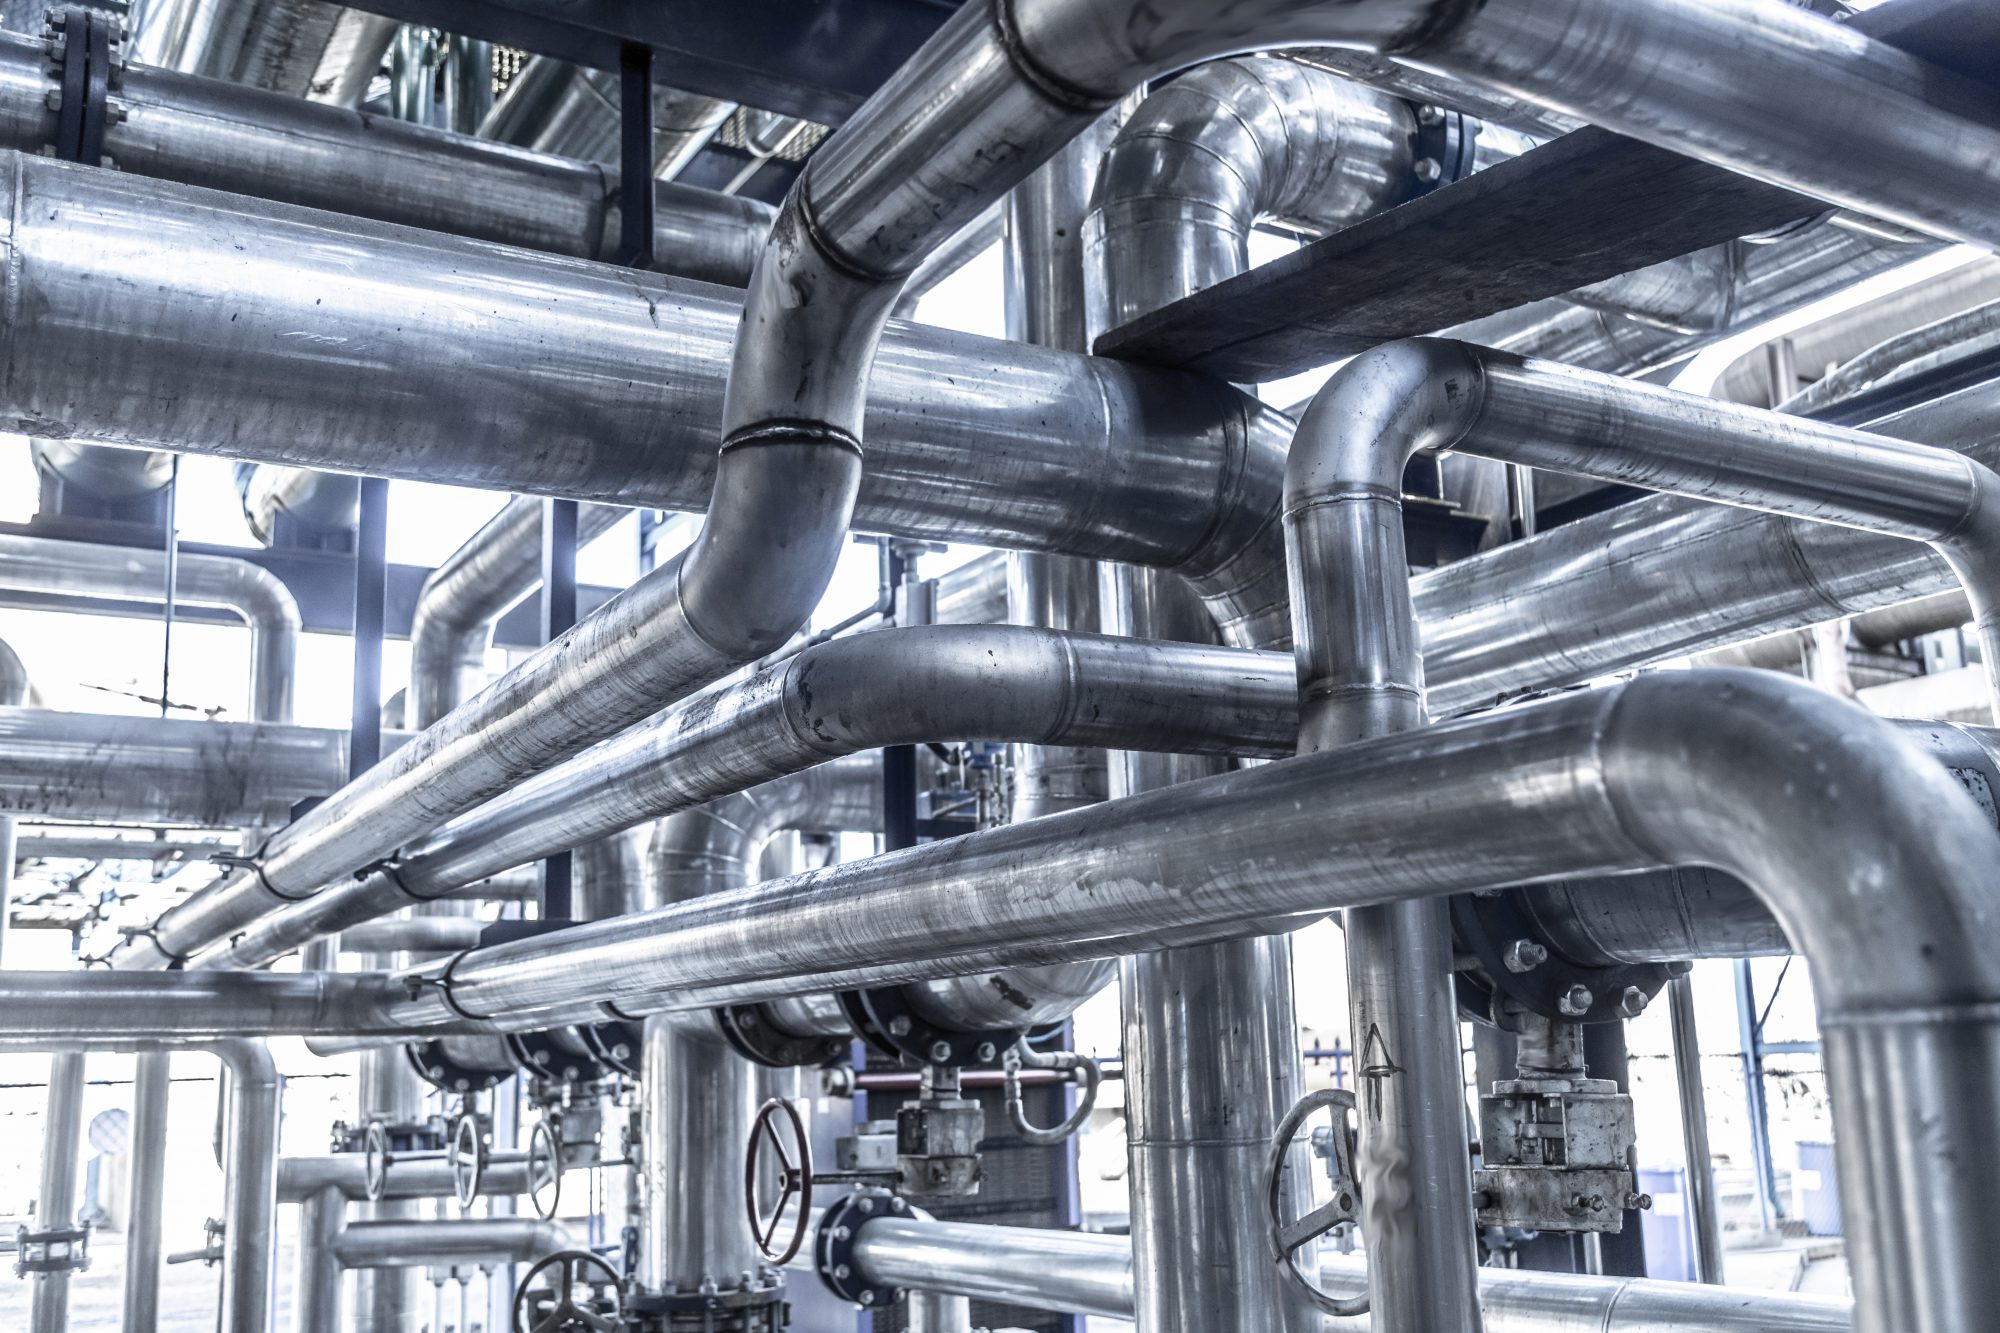 Stainless steel piping with valves and stainless steel actuators